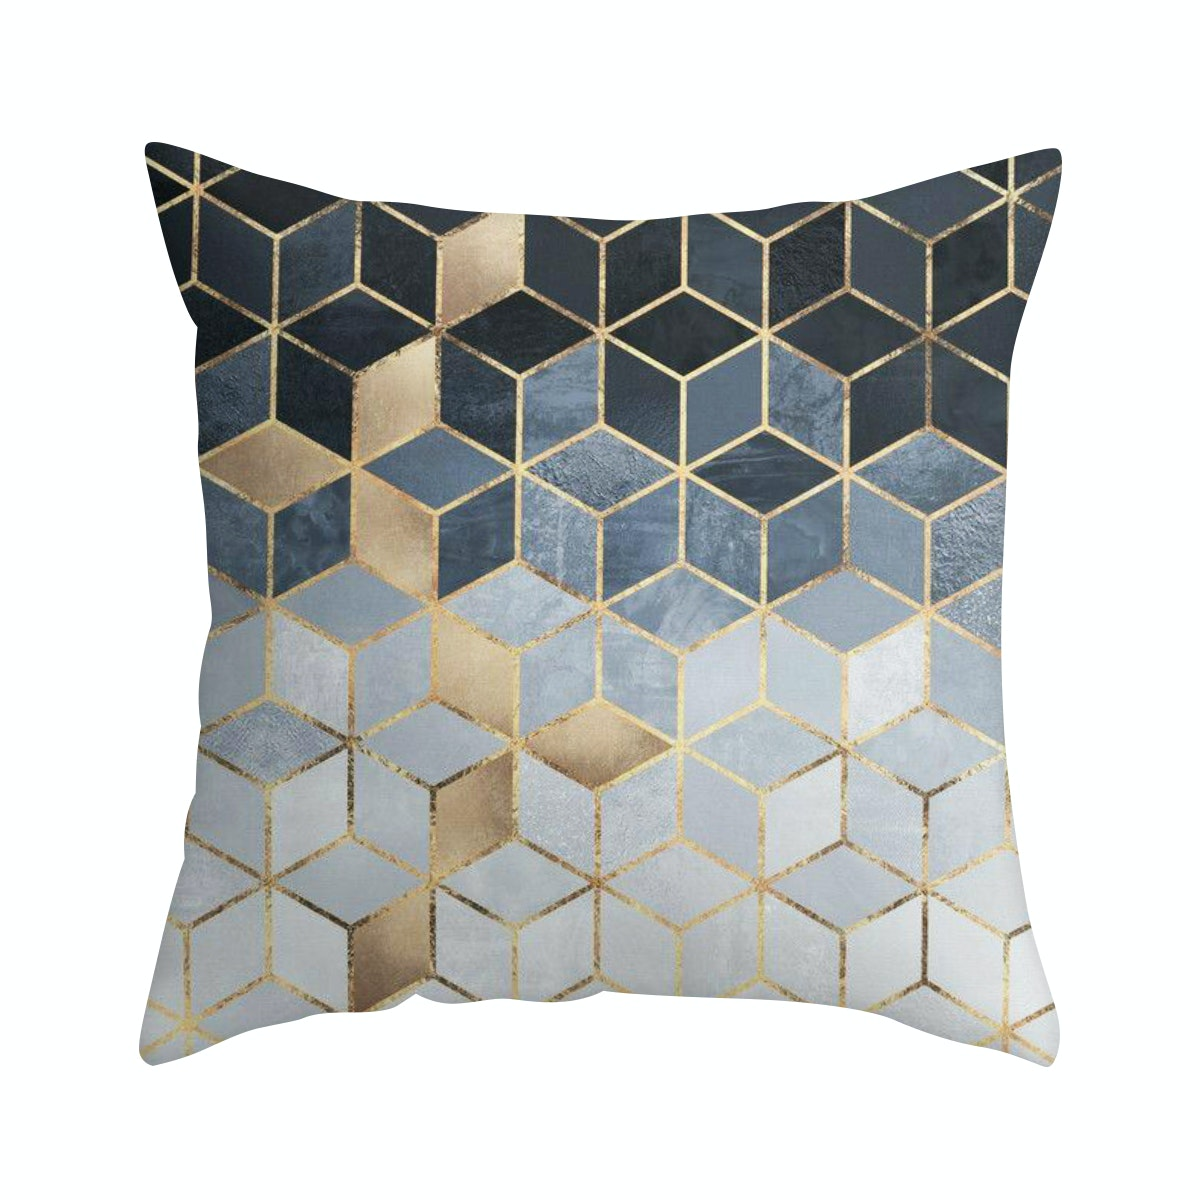 Megallery Cover Cushion NEWP26 40x40cm